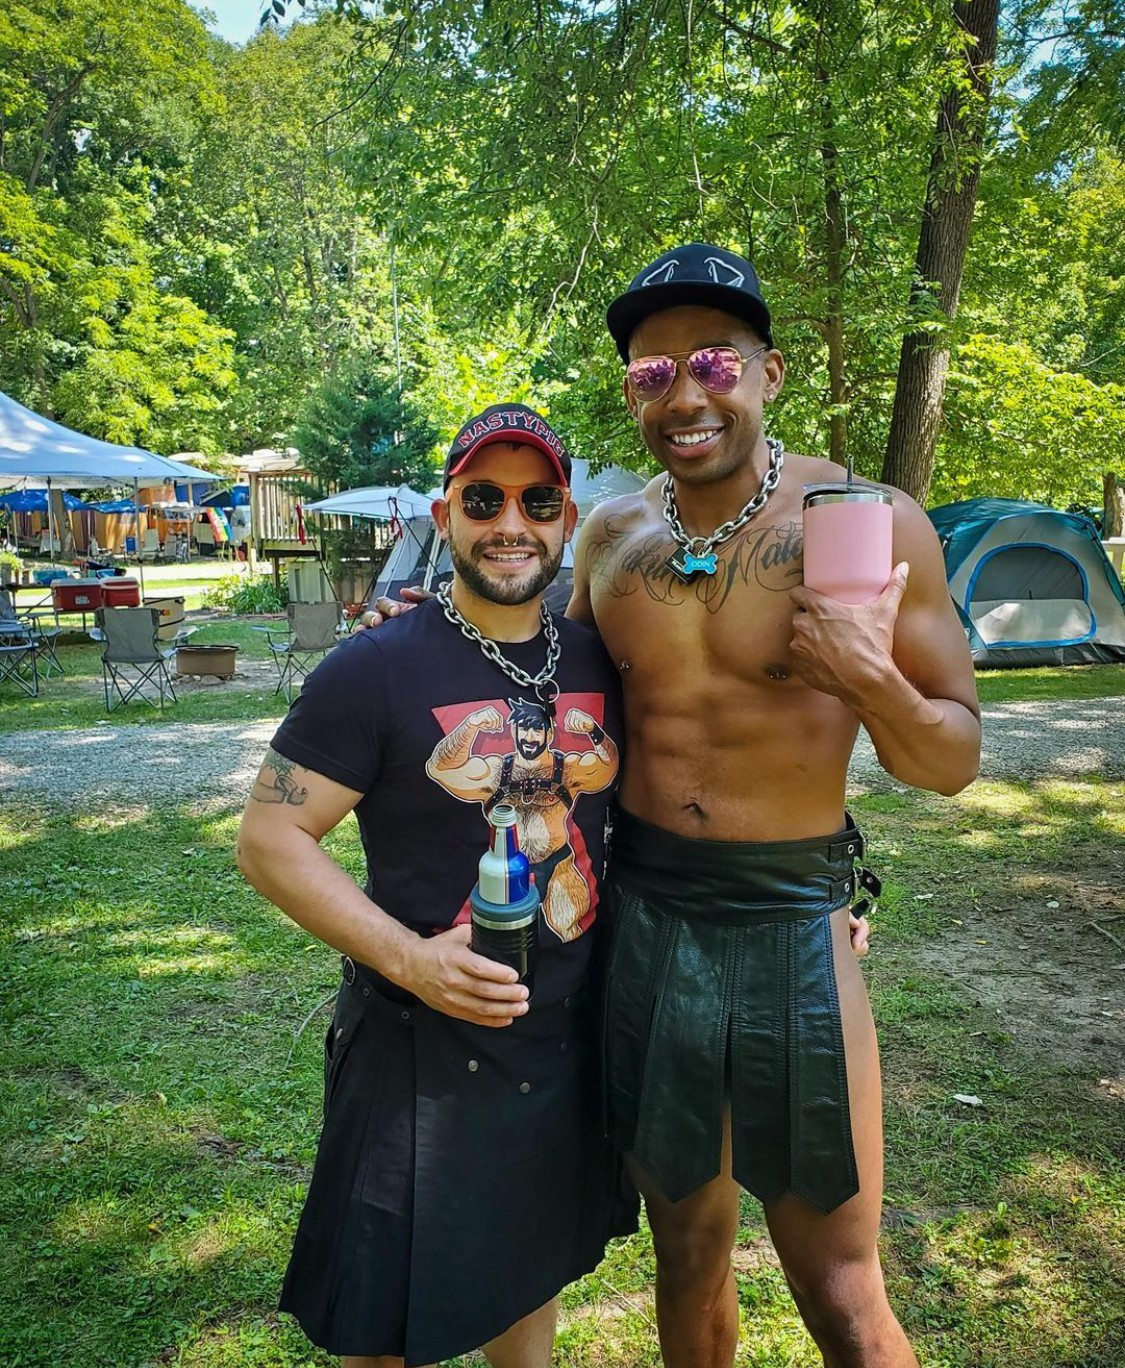 Camping at Freedom Valley - one of the best gay campgrounds in North America